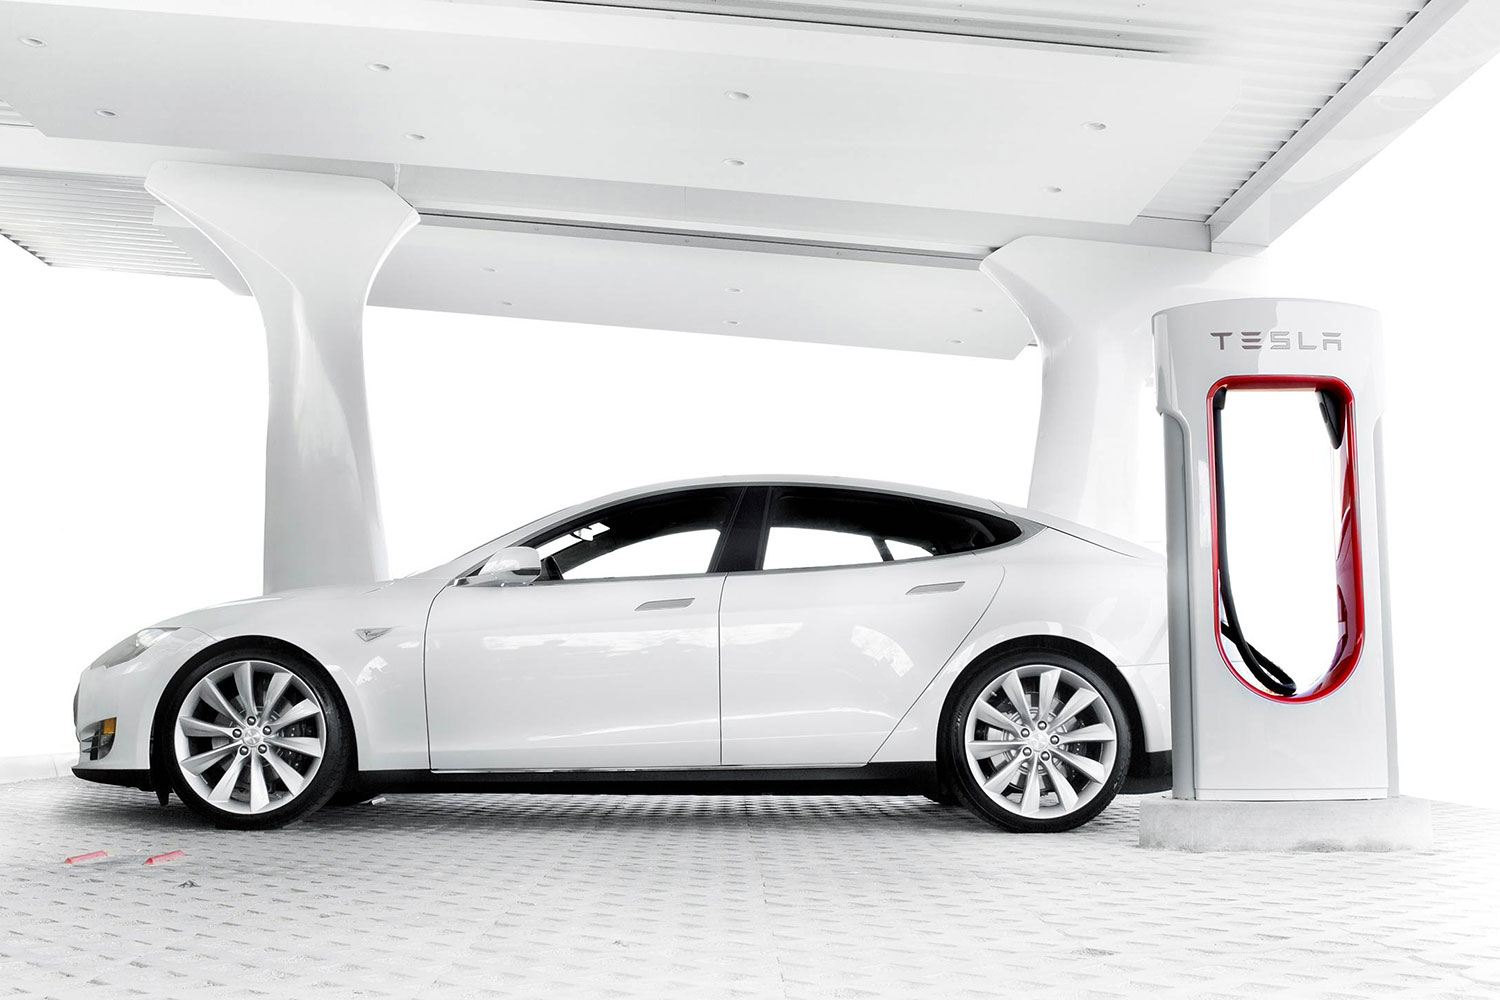 Elon Musk Will Take Action Against Inconsiderate Tesla